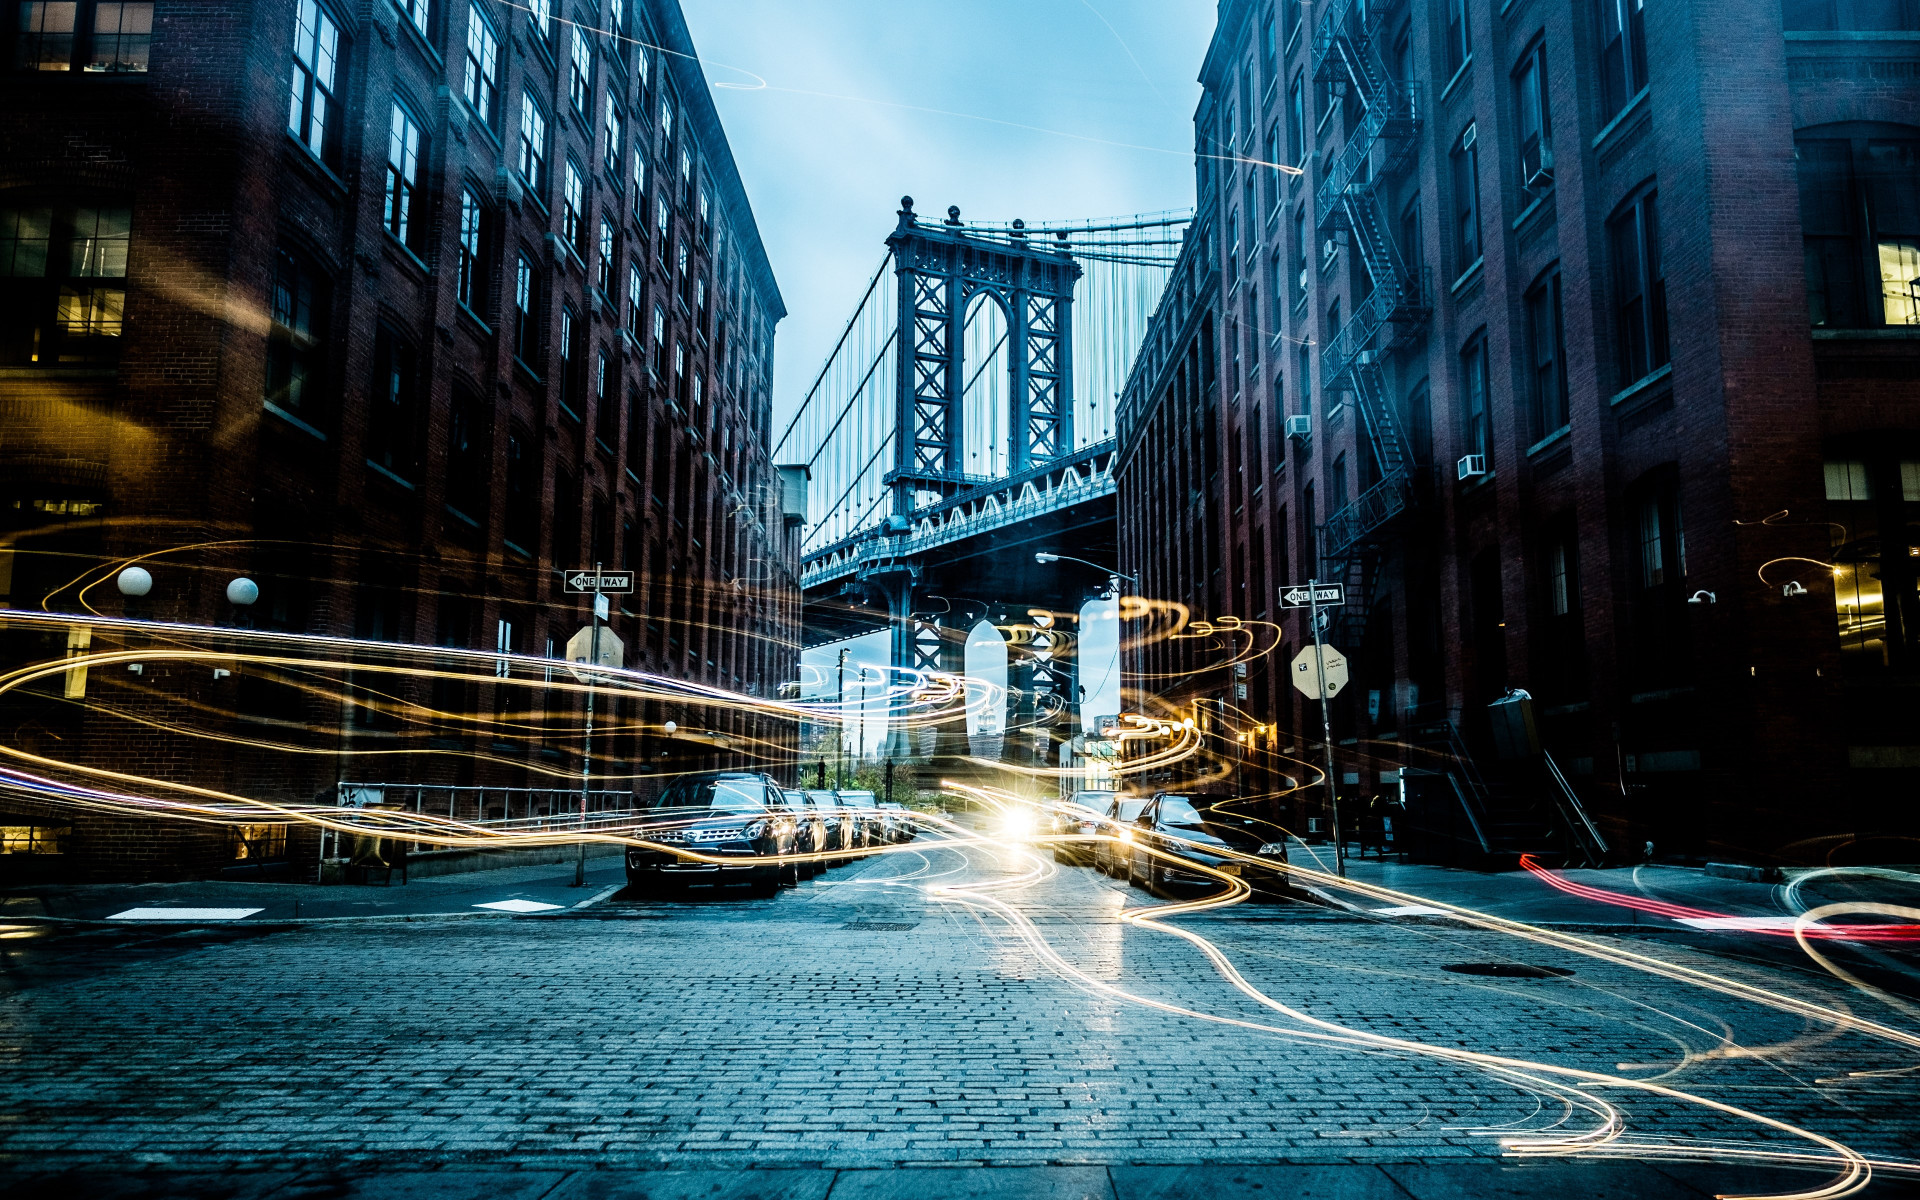 Light painting on New York streets | 1920x1200 wallpaper